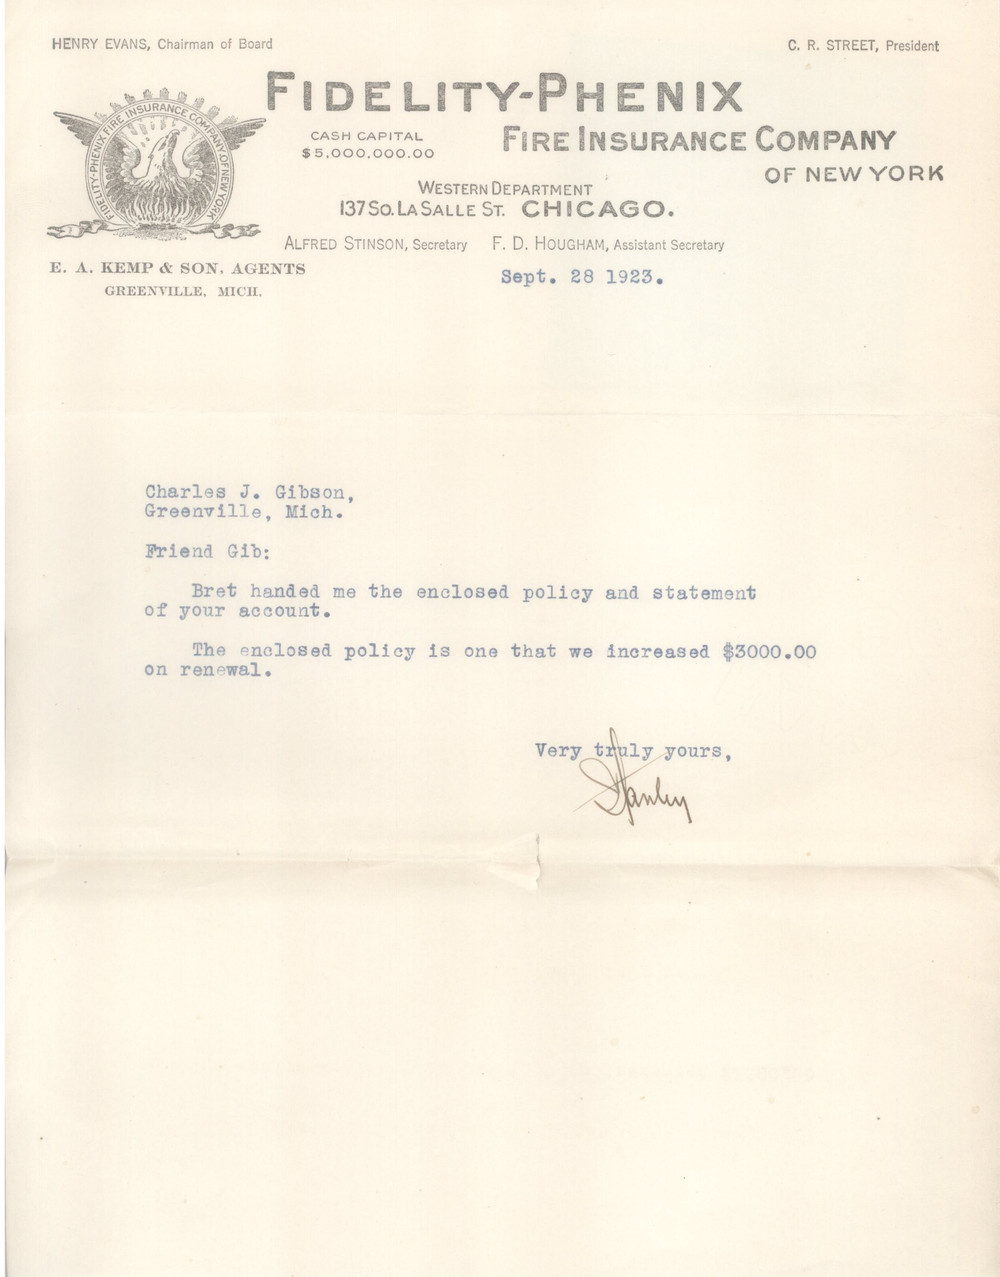 1923 Letter from L. Stanley Kemp to Charles Gibson regarding his fire insurance policy.